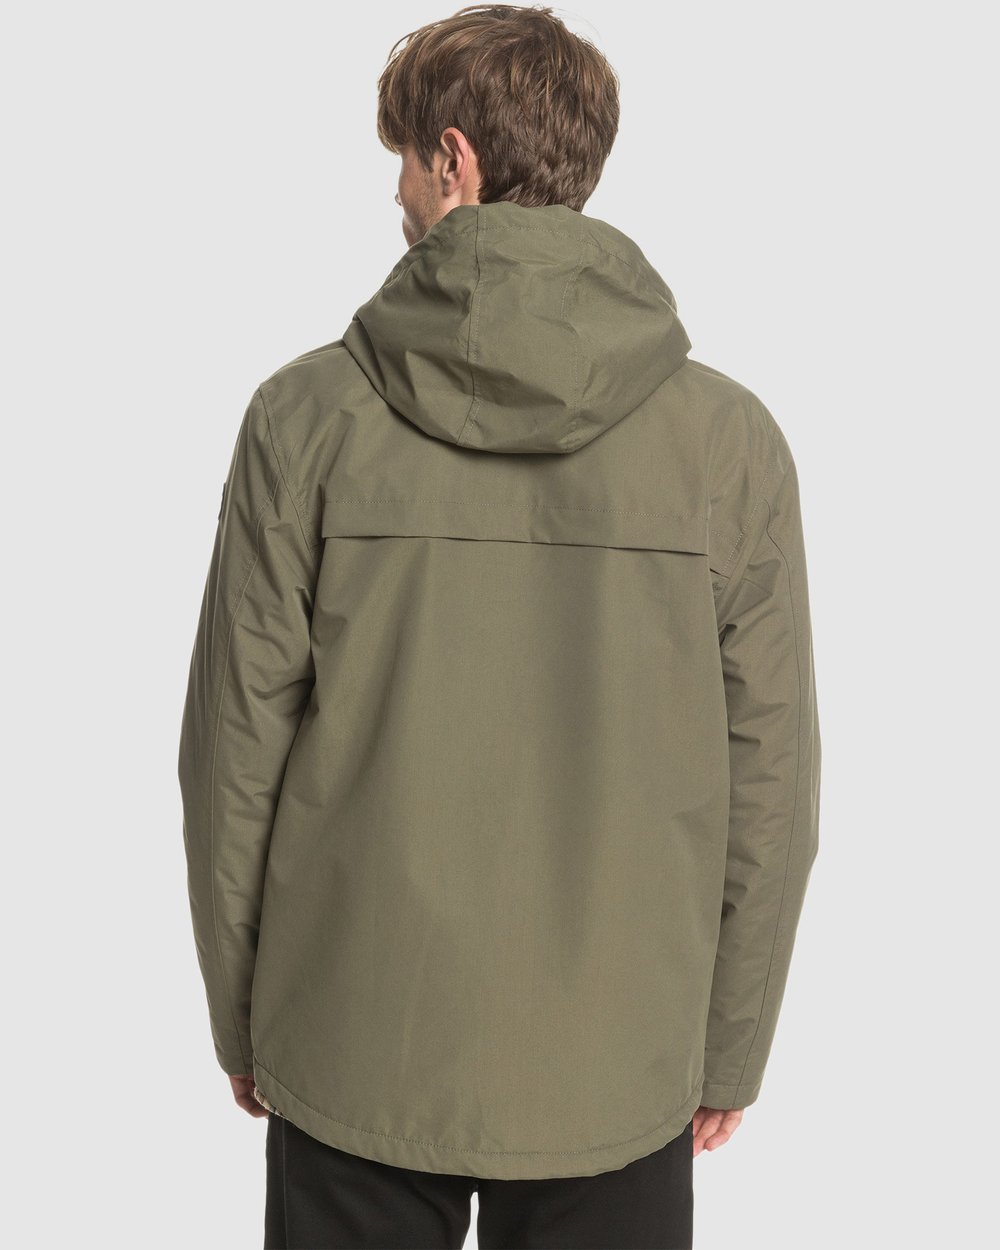 Quiksilver Boys Waiting Period-Hooded Water-Resistant Parka 8-16 Jackets